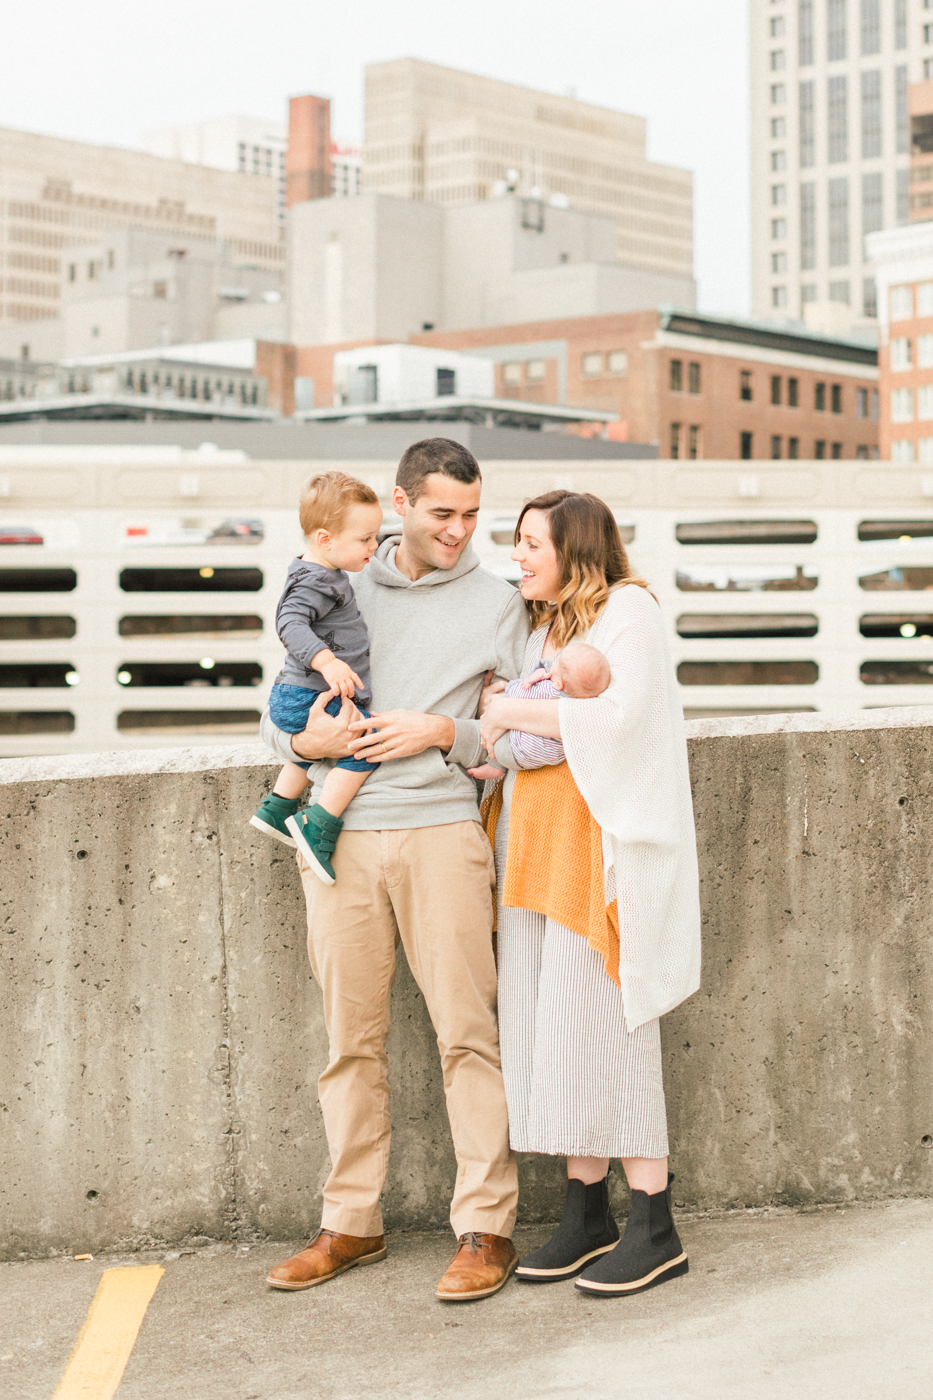 four corners photography atlanta newborn photographer atlanta maternity photography downtown atlanta family session best atlanta newborn photographer-8.jpg